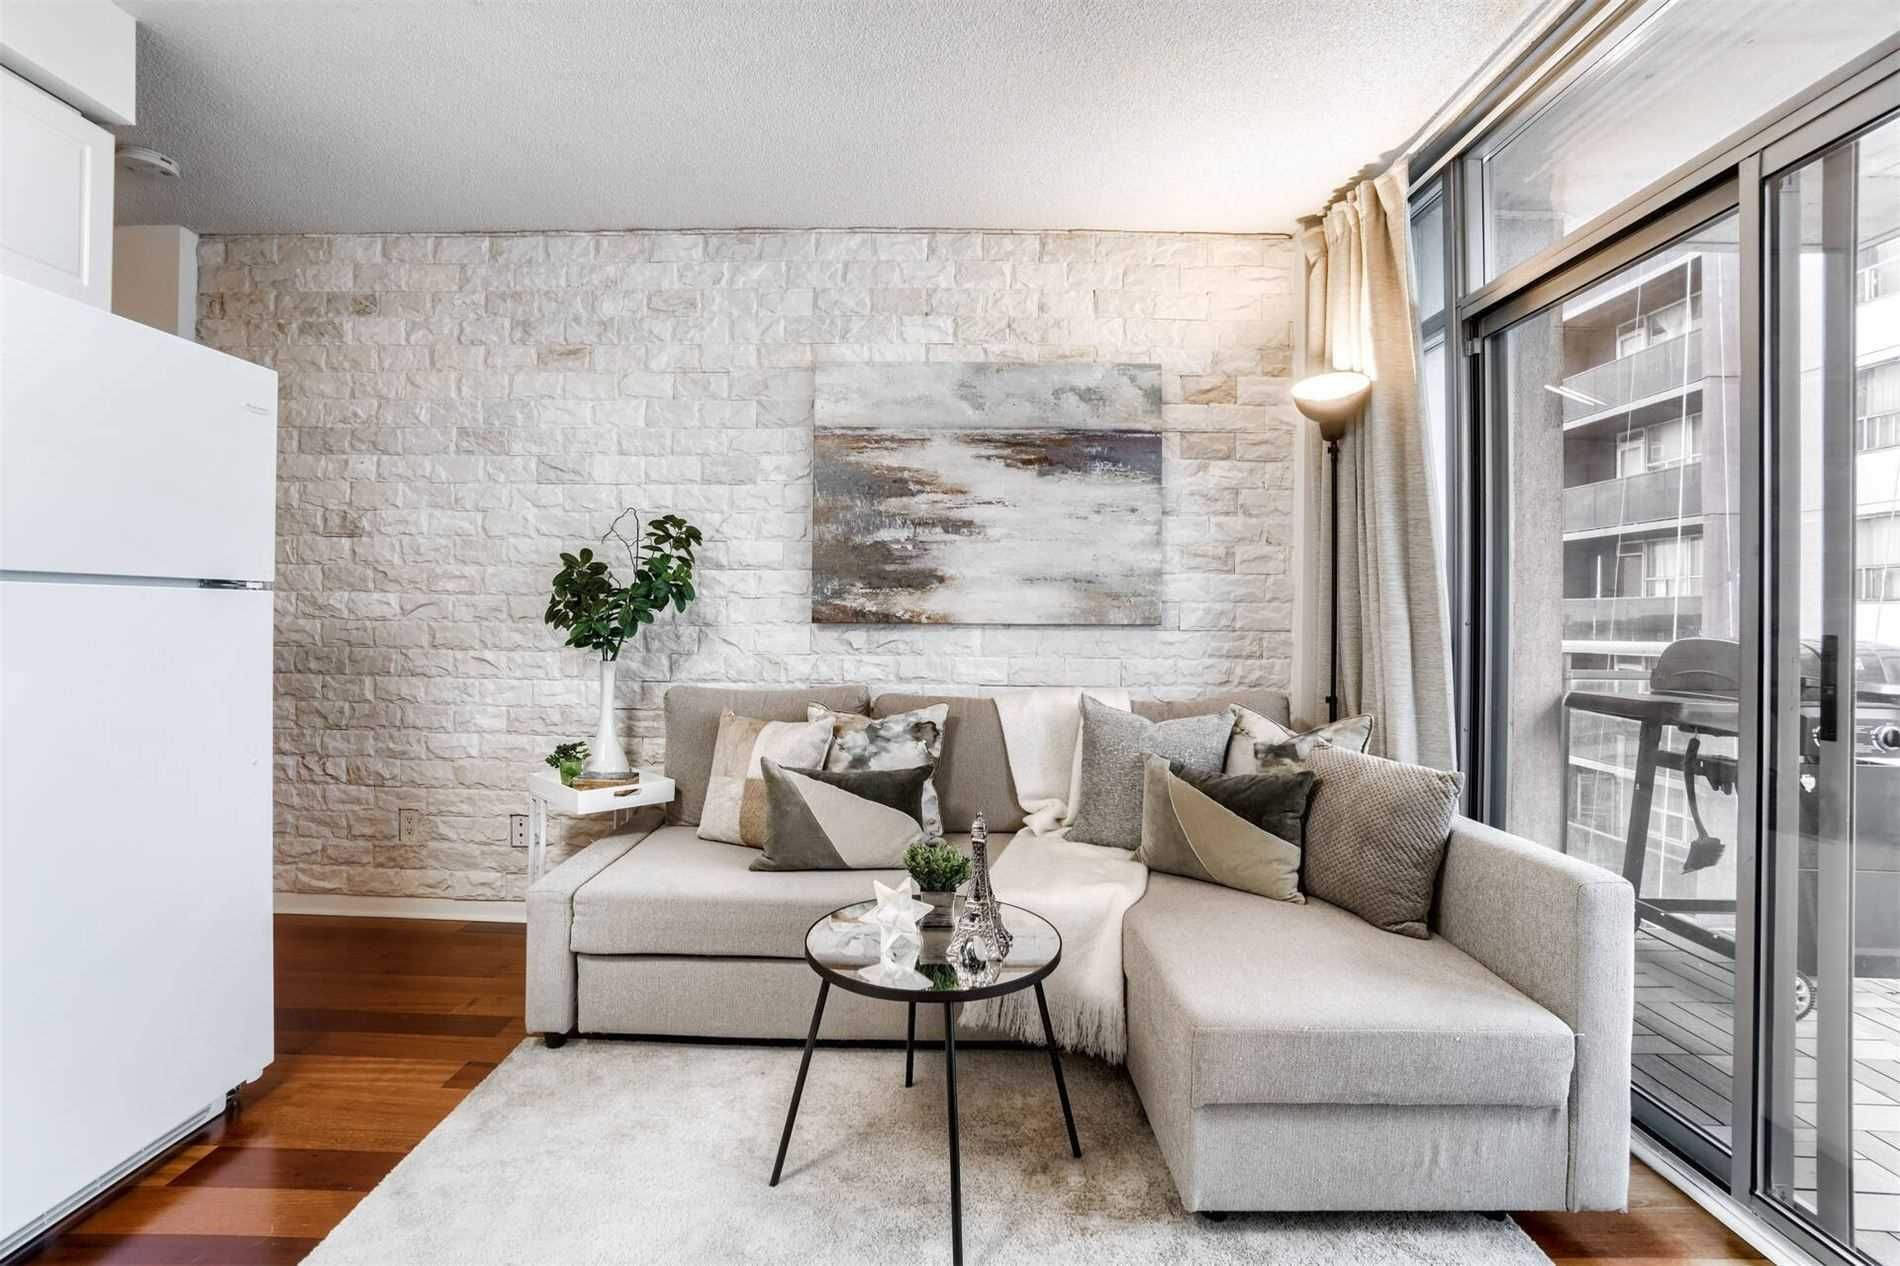 2464 Weston Rd, unit 705 for sale in Toronto - image #1